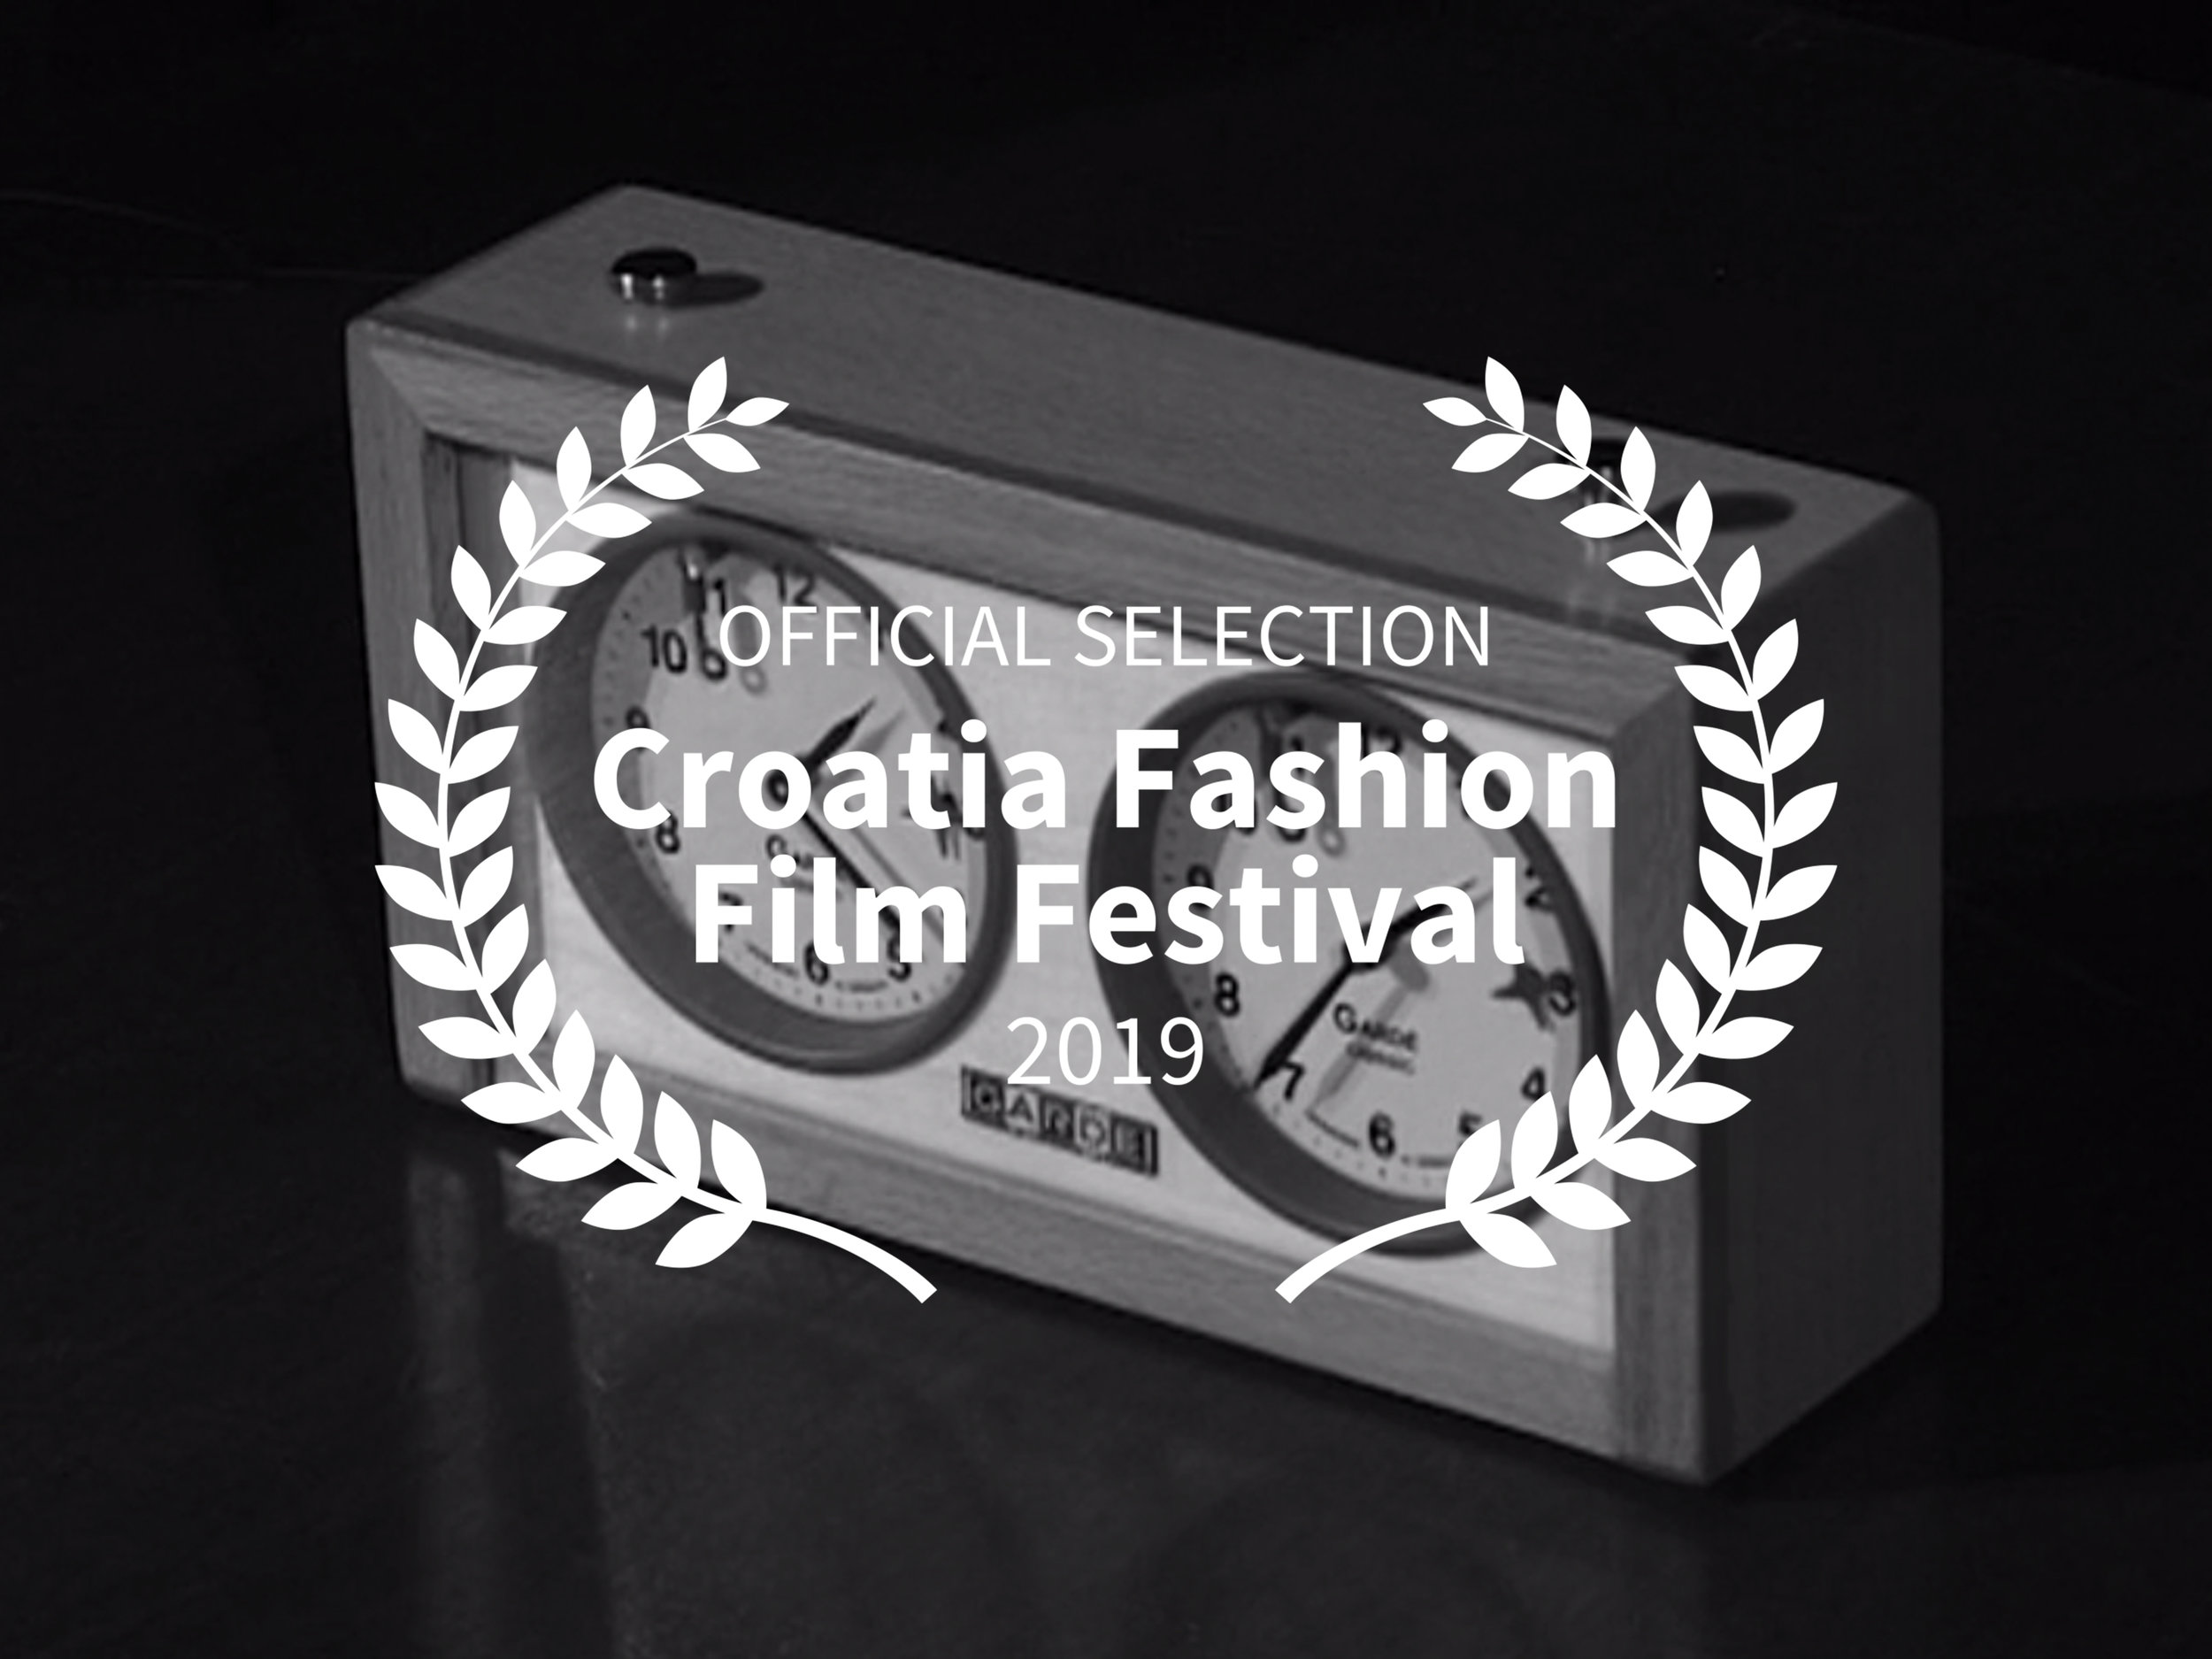 croatia fashion film festival potf